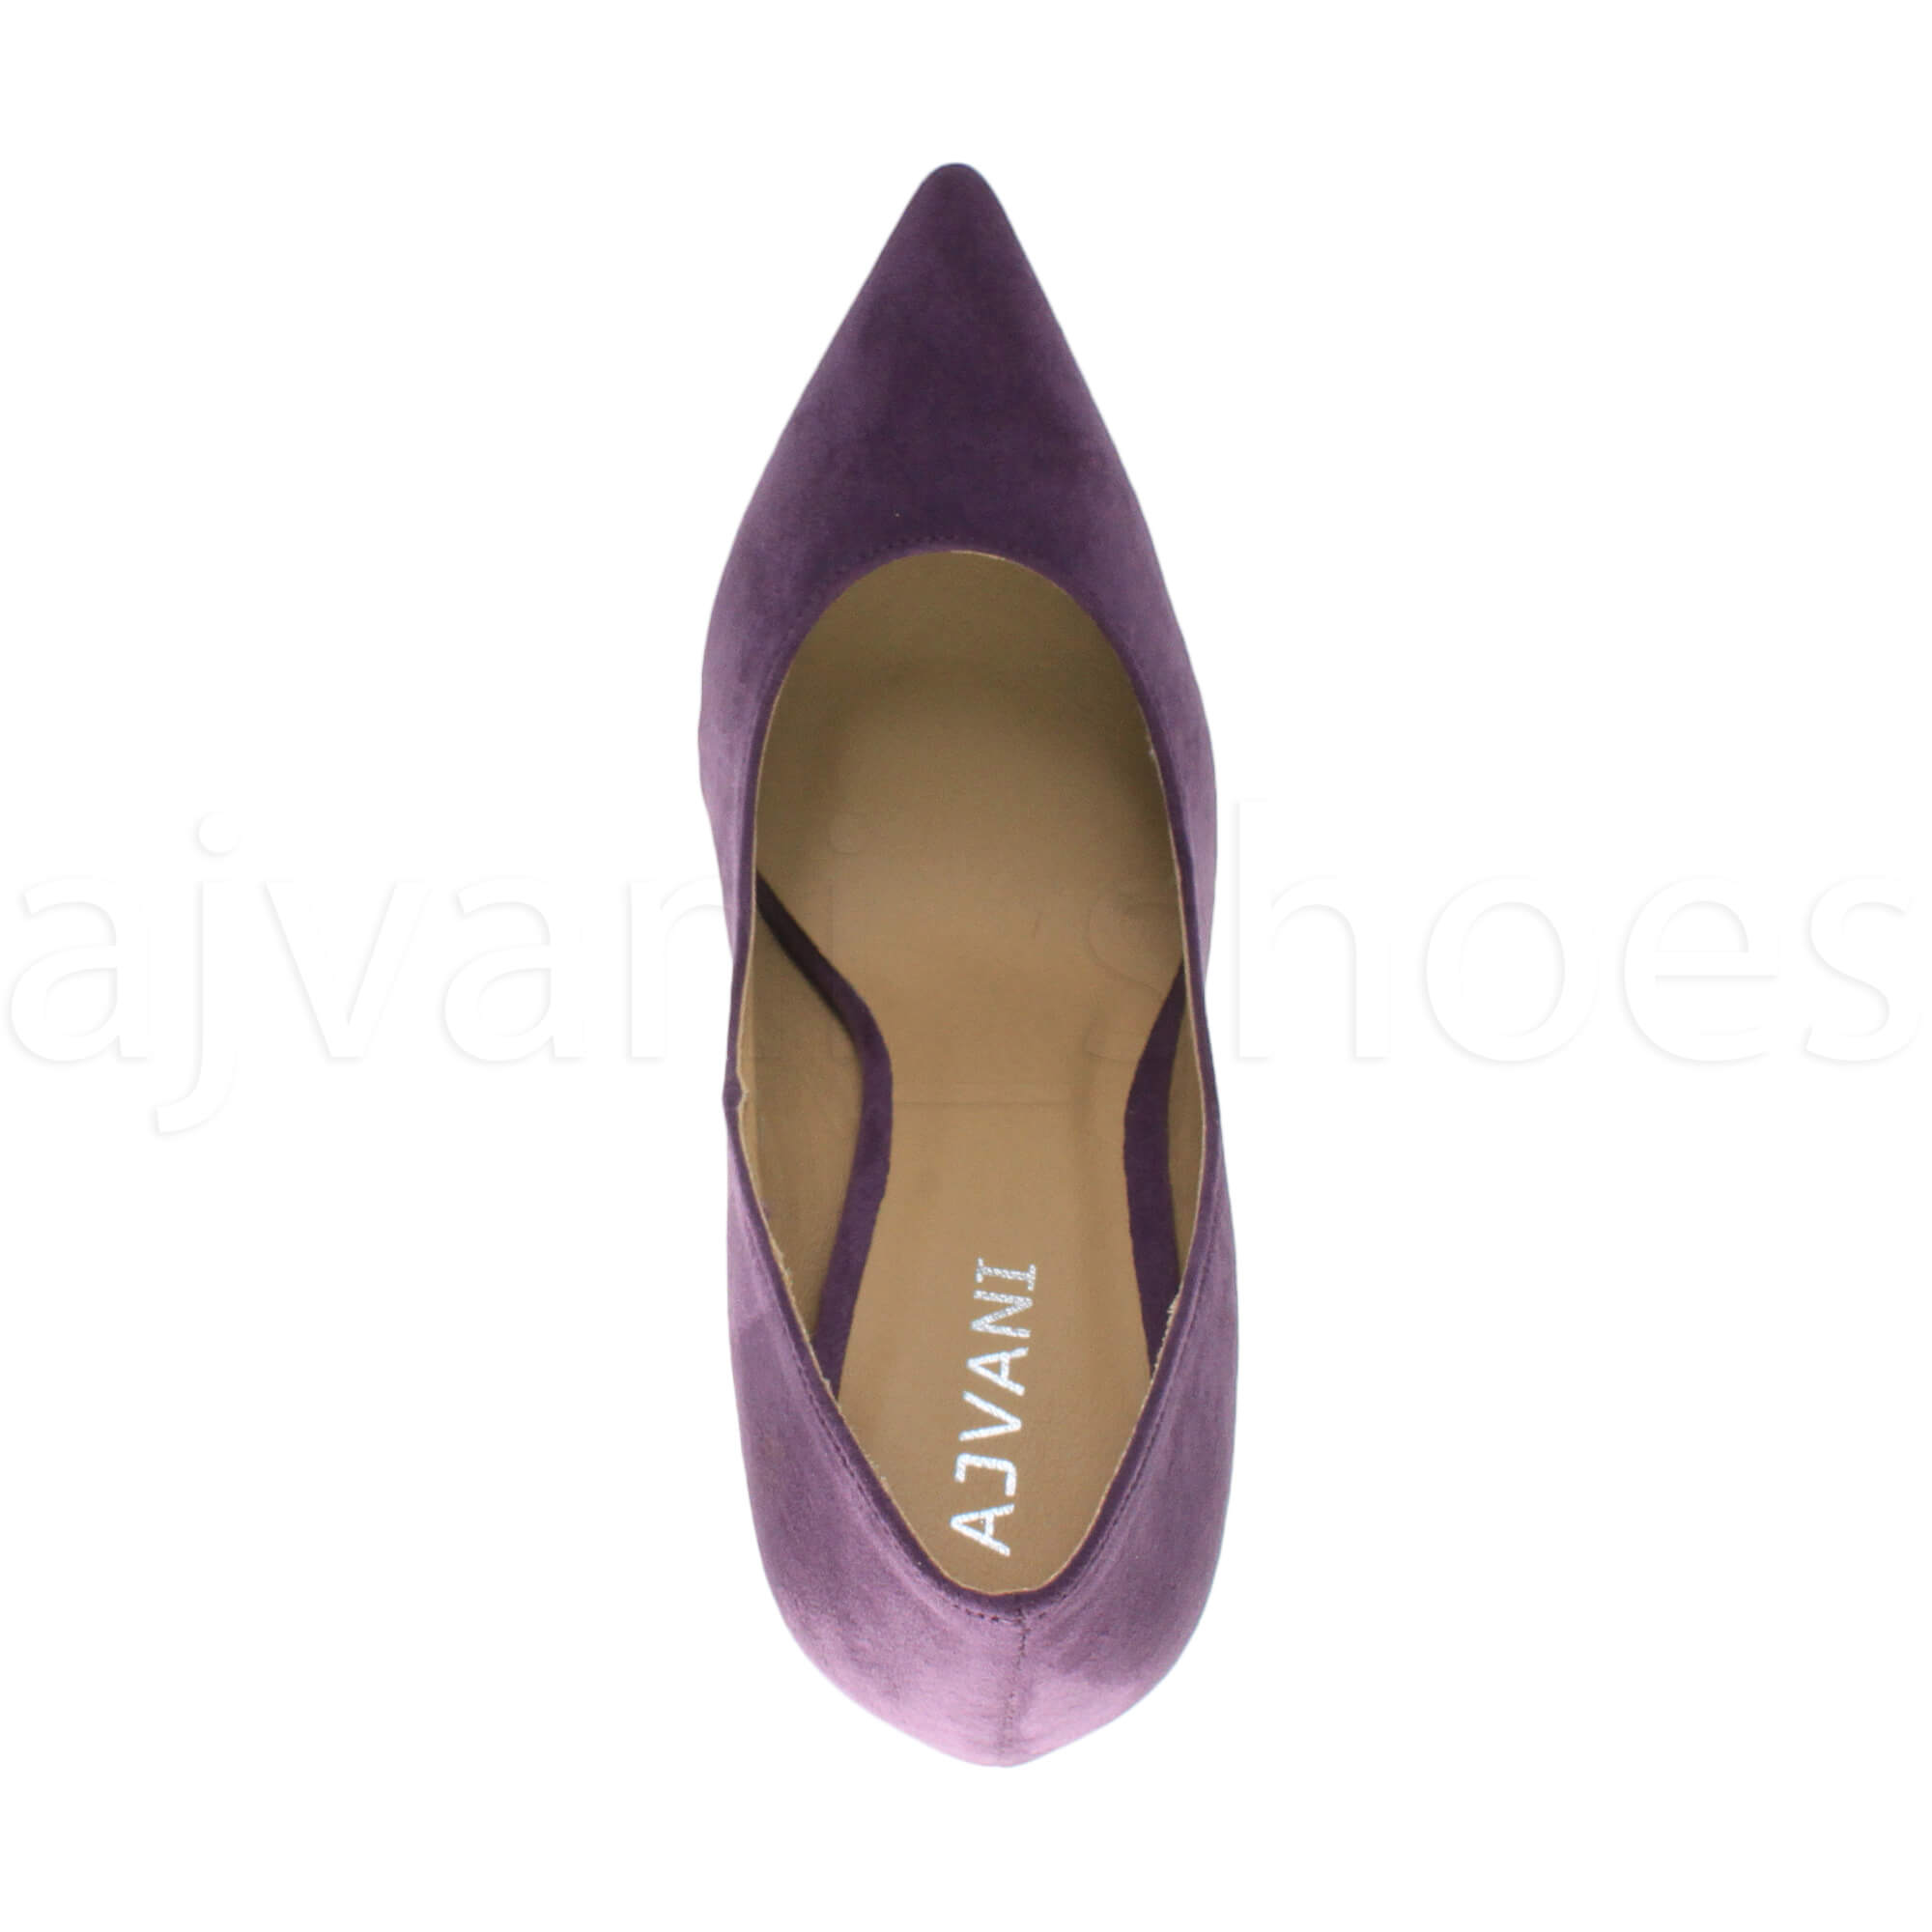 WOMENS-LADIES-HIGH-HEEL-POINTED-CONTRAST-COURT-SMART-PARTY-WORK-SHOES-PUMPS-SIZE thumbnail 158